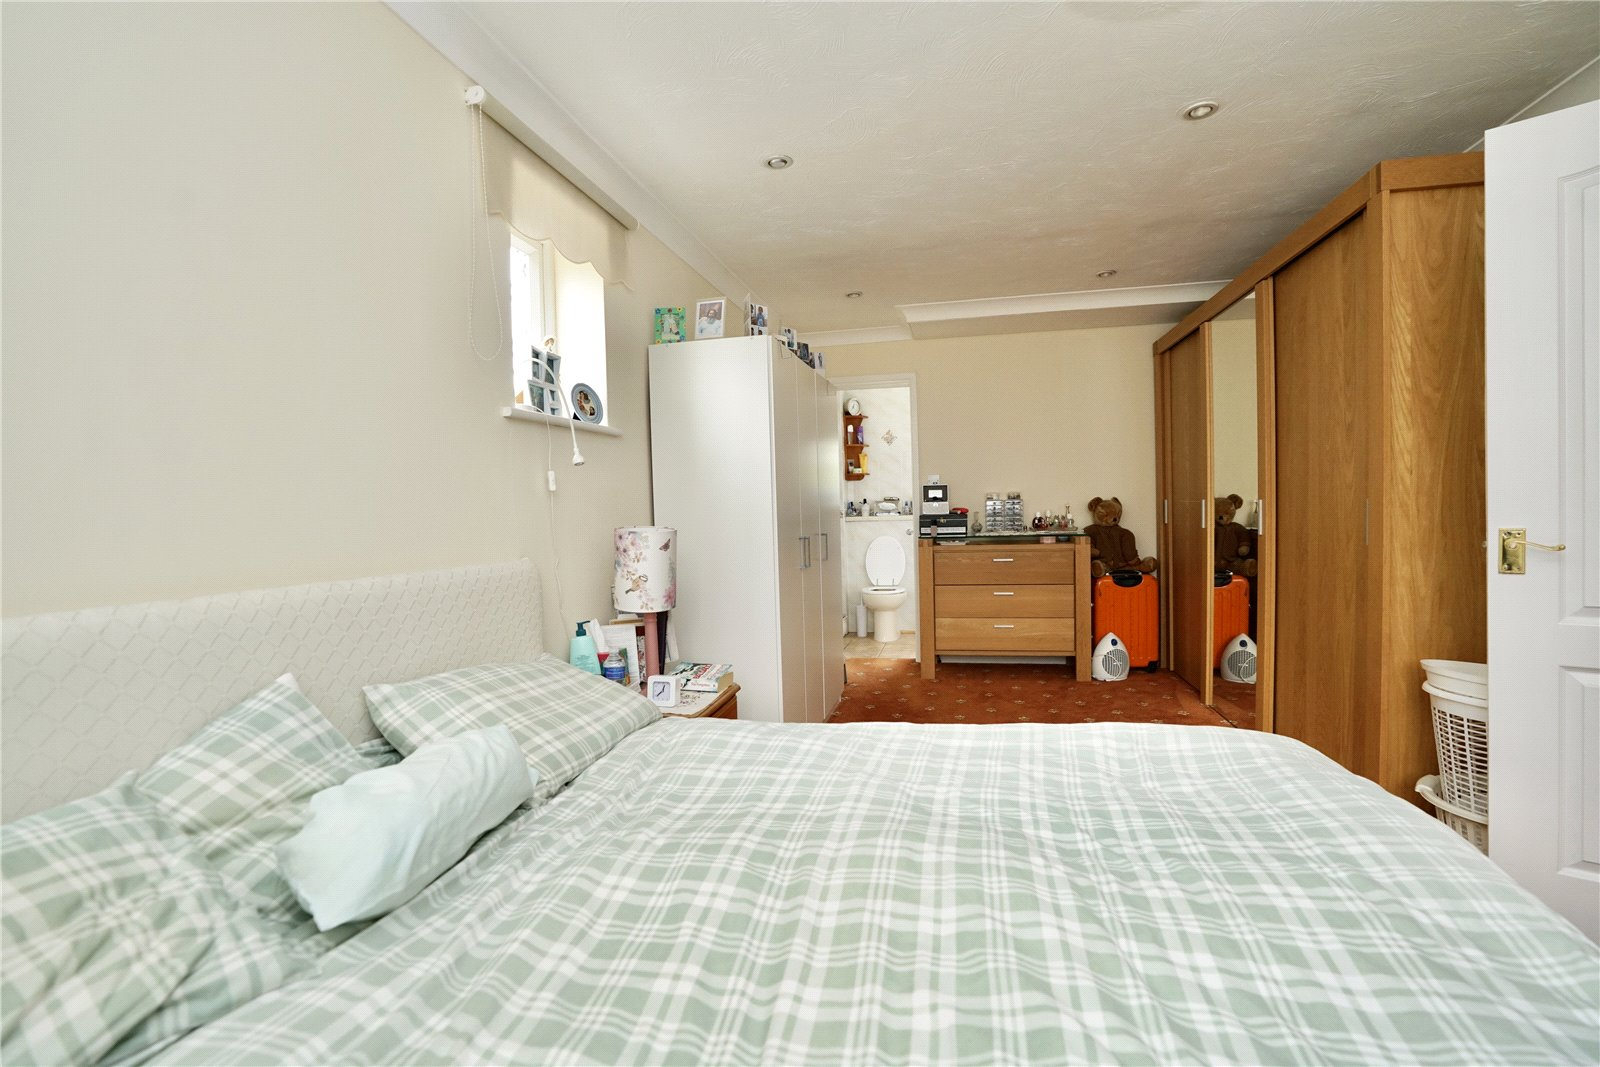 3 bed house for sale in Cunningham Way, Eaton Socon  - Property Image 5